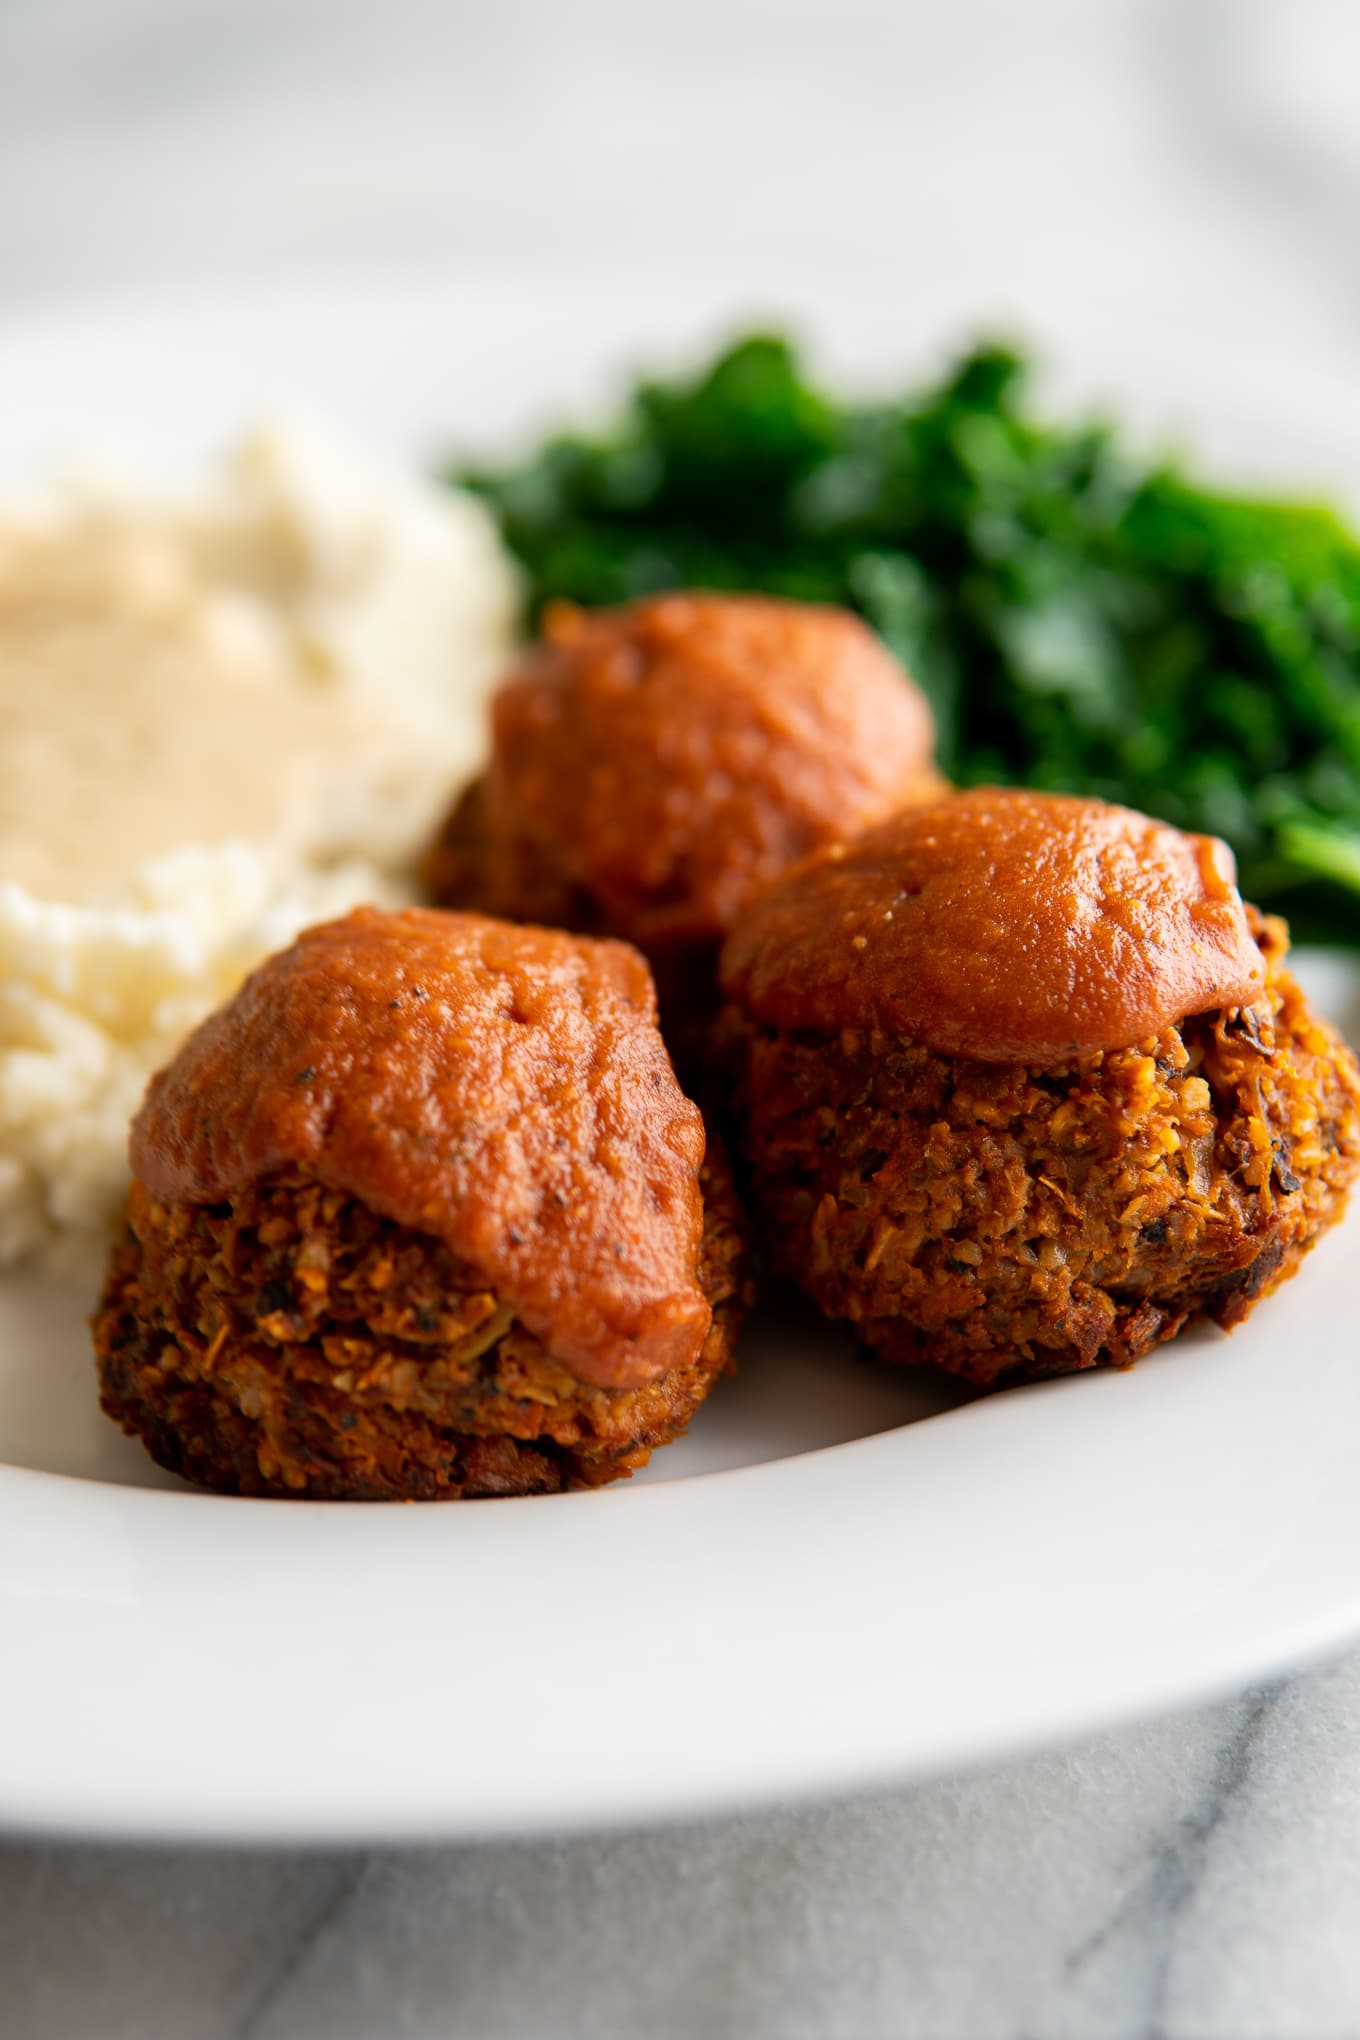 Close-up of vegan meatball cups on plate.